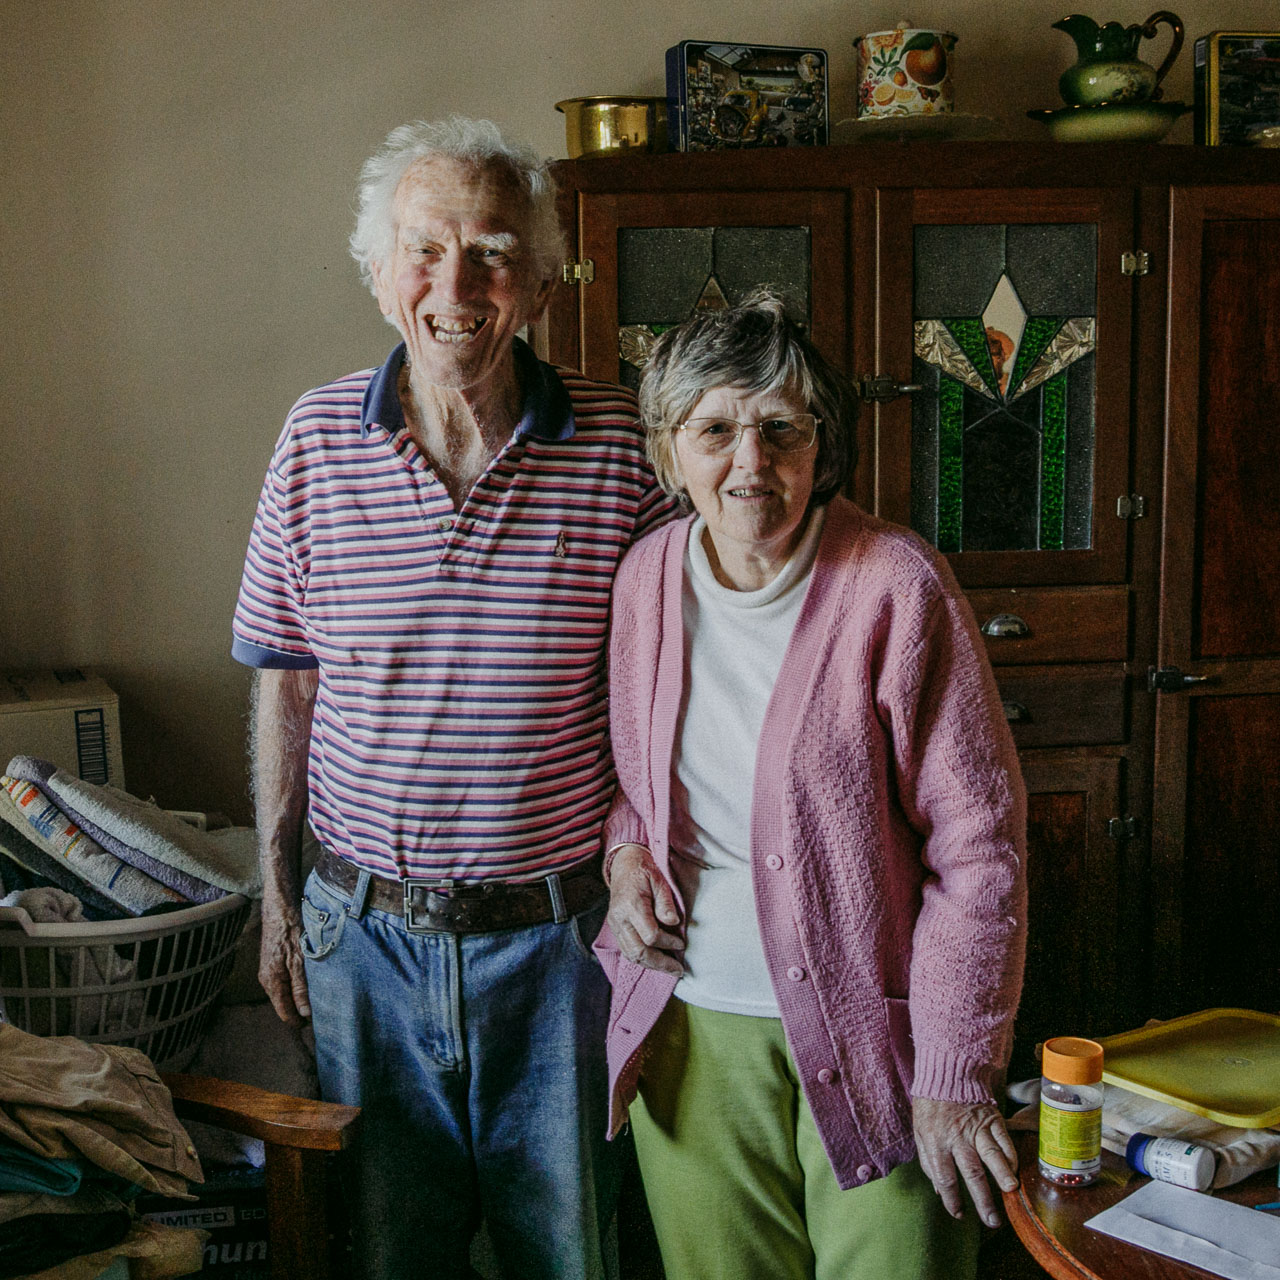 Portrait of an elderly couple for Nic Duncan's Lives Well Lived project